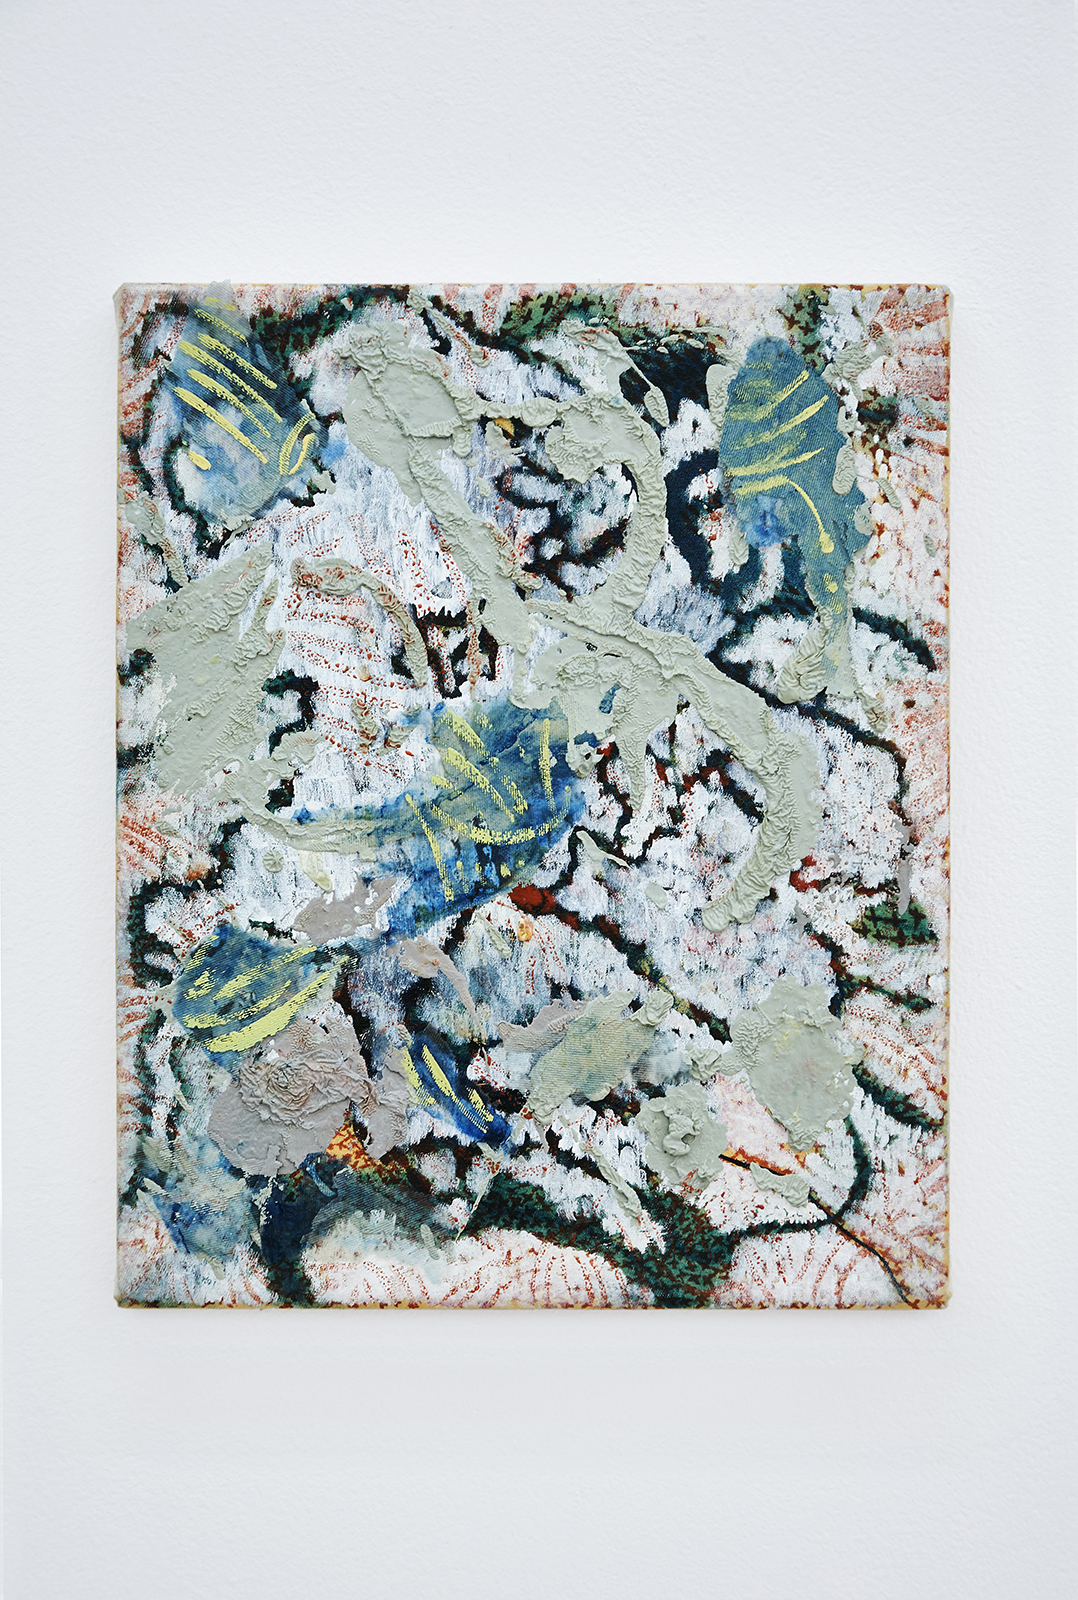 Anna Schachinger, Untitled, 2014-2016. Oil and acrylic medium on canvas, 22 x 27 cm (8.5 x 10.5 in.)